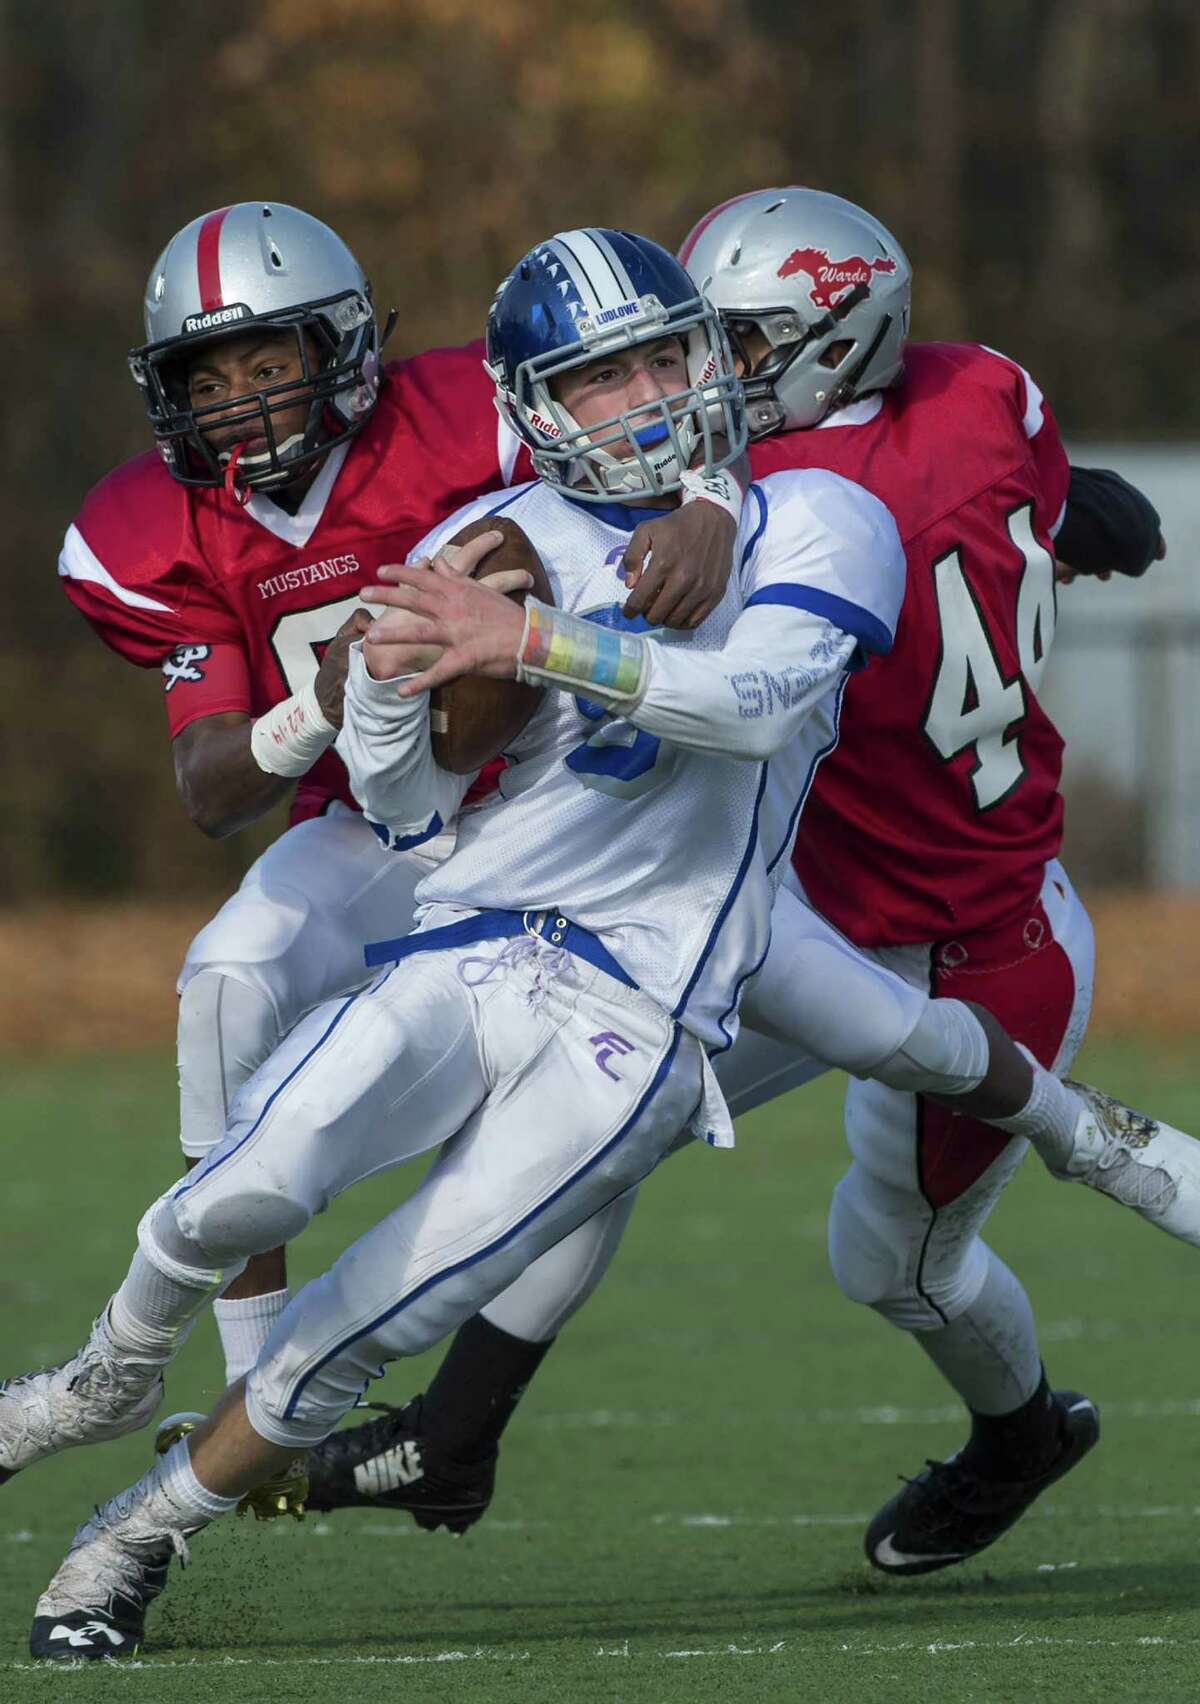 Fairfield Warde High School?'s Hank Jean-Jacques and Joe Gjinaj tackle Fairfield Ludlowe High School?'s Brian Howell during their annual Thanksgiving Day football game played at Fairfield Warde High School, Fairfield, CT Thursday, November 24, 2016.